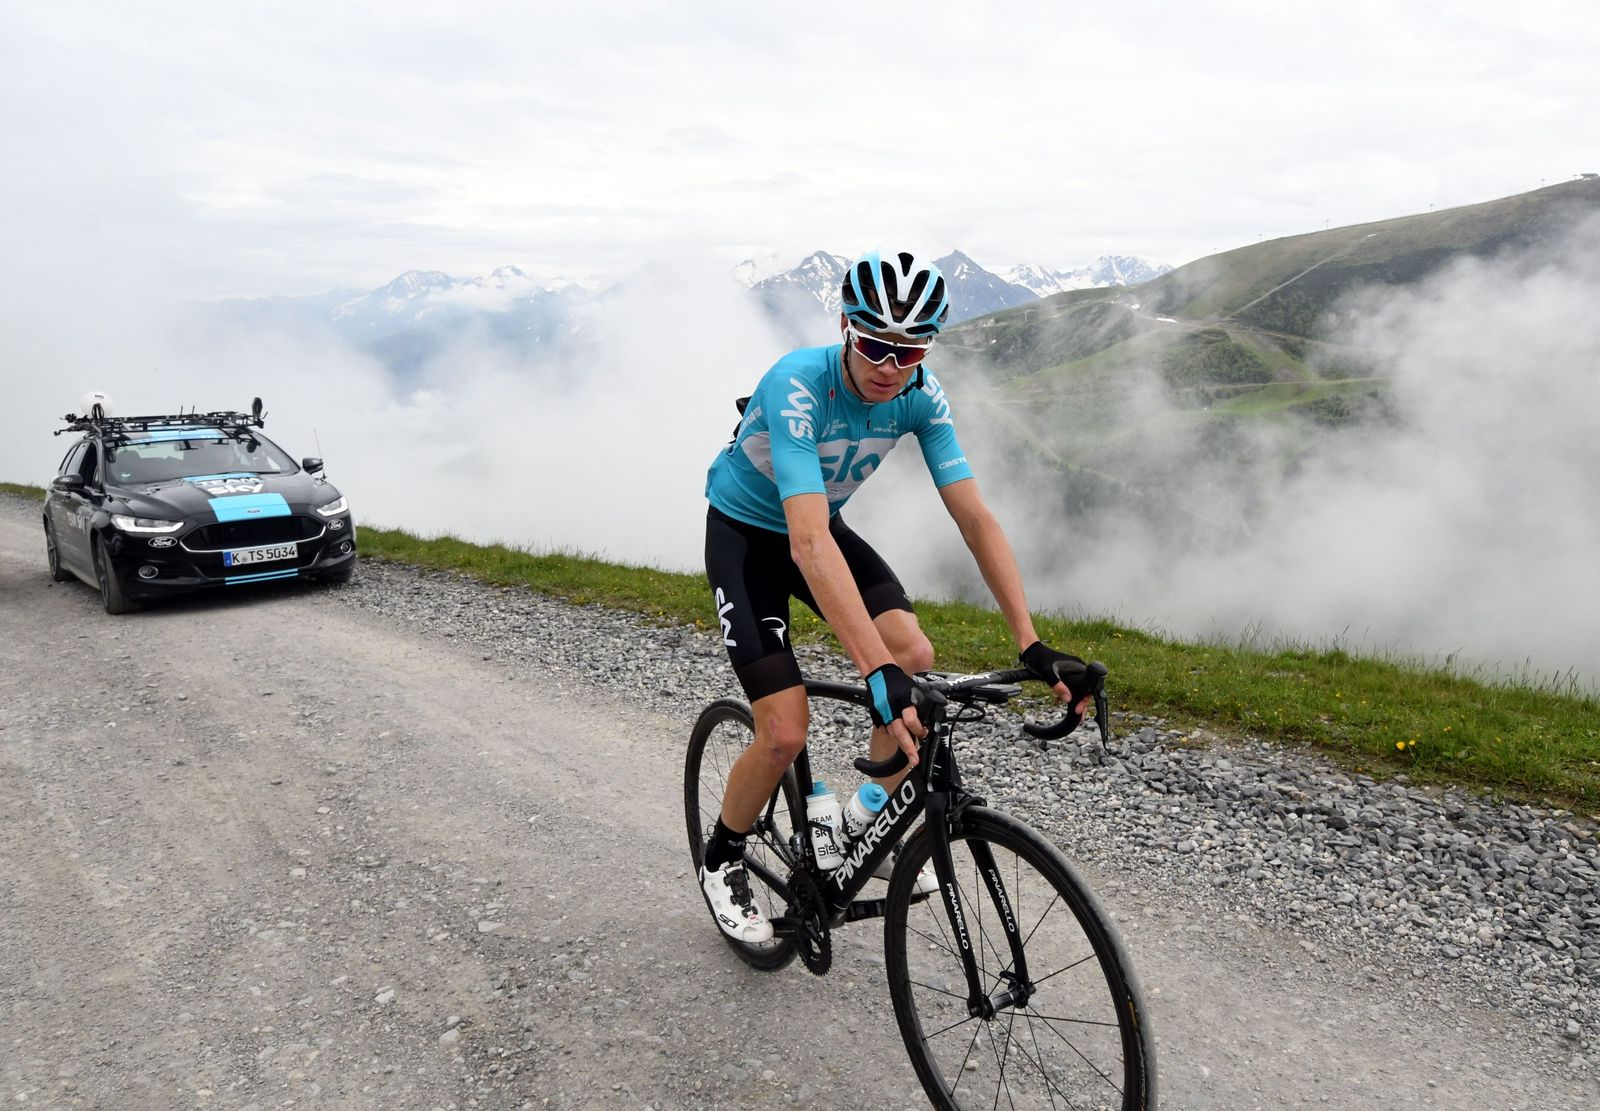 CYCLING-FRA-GBR-FROOME